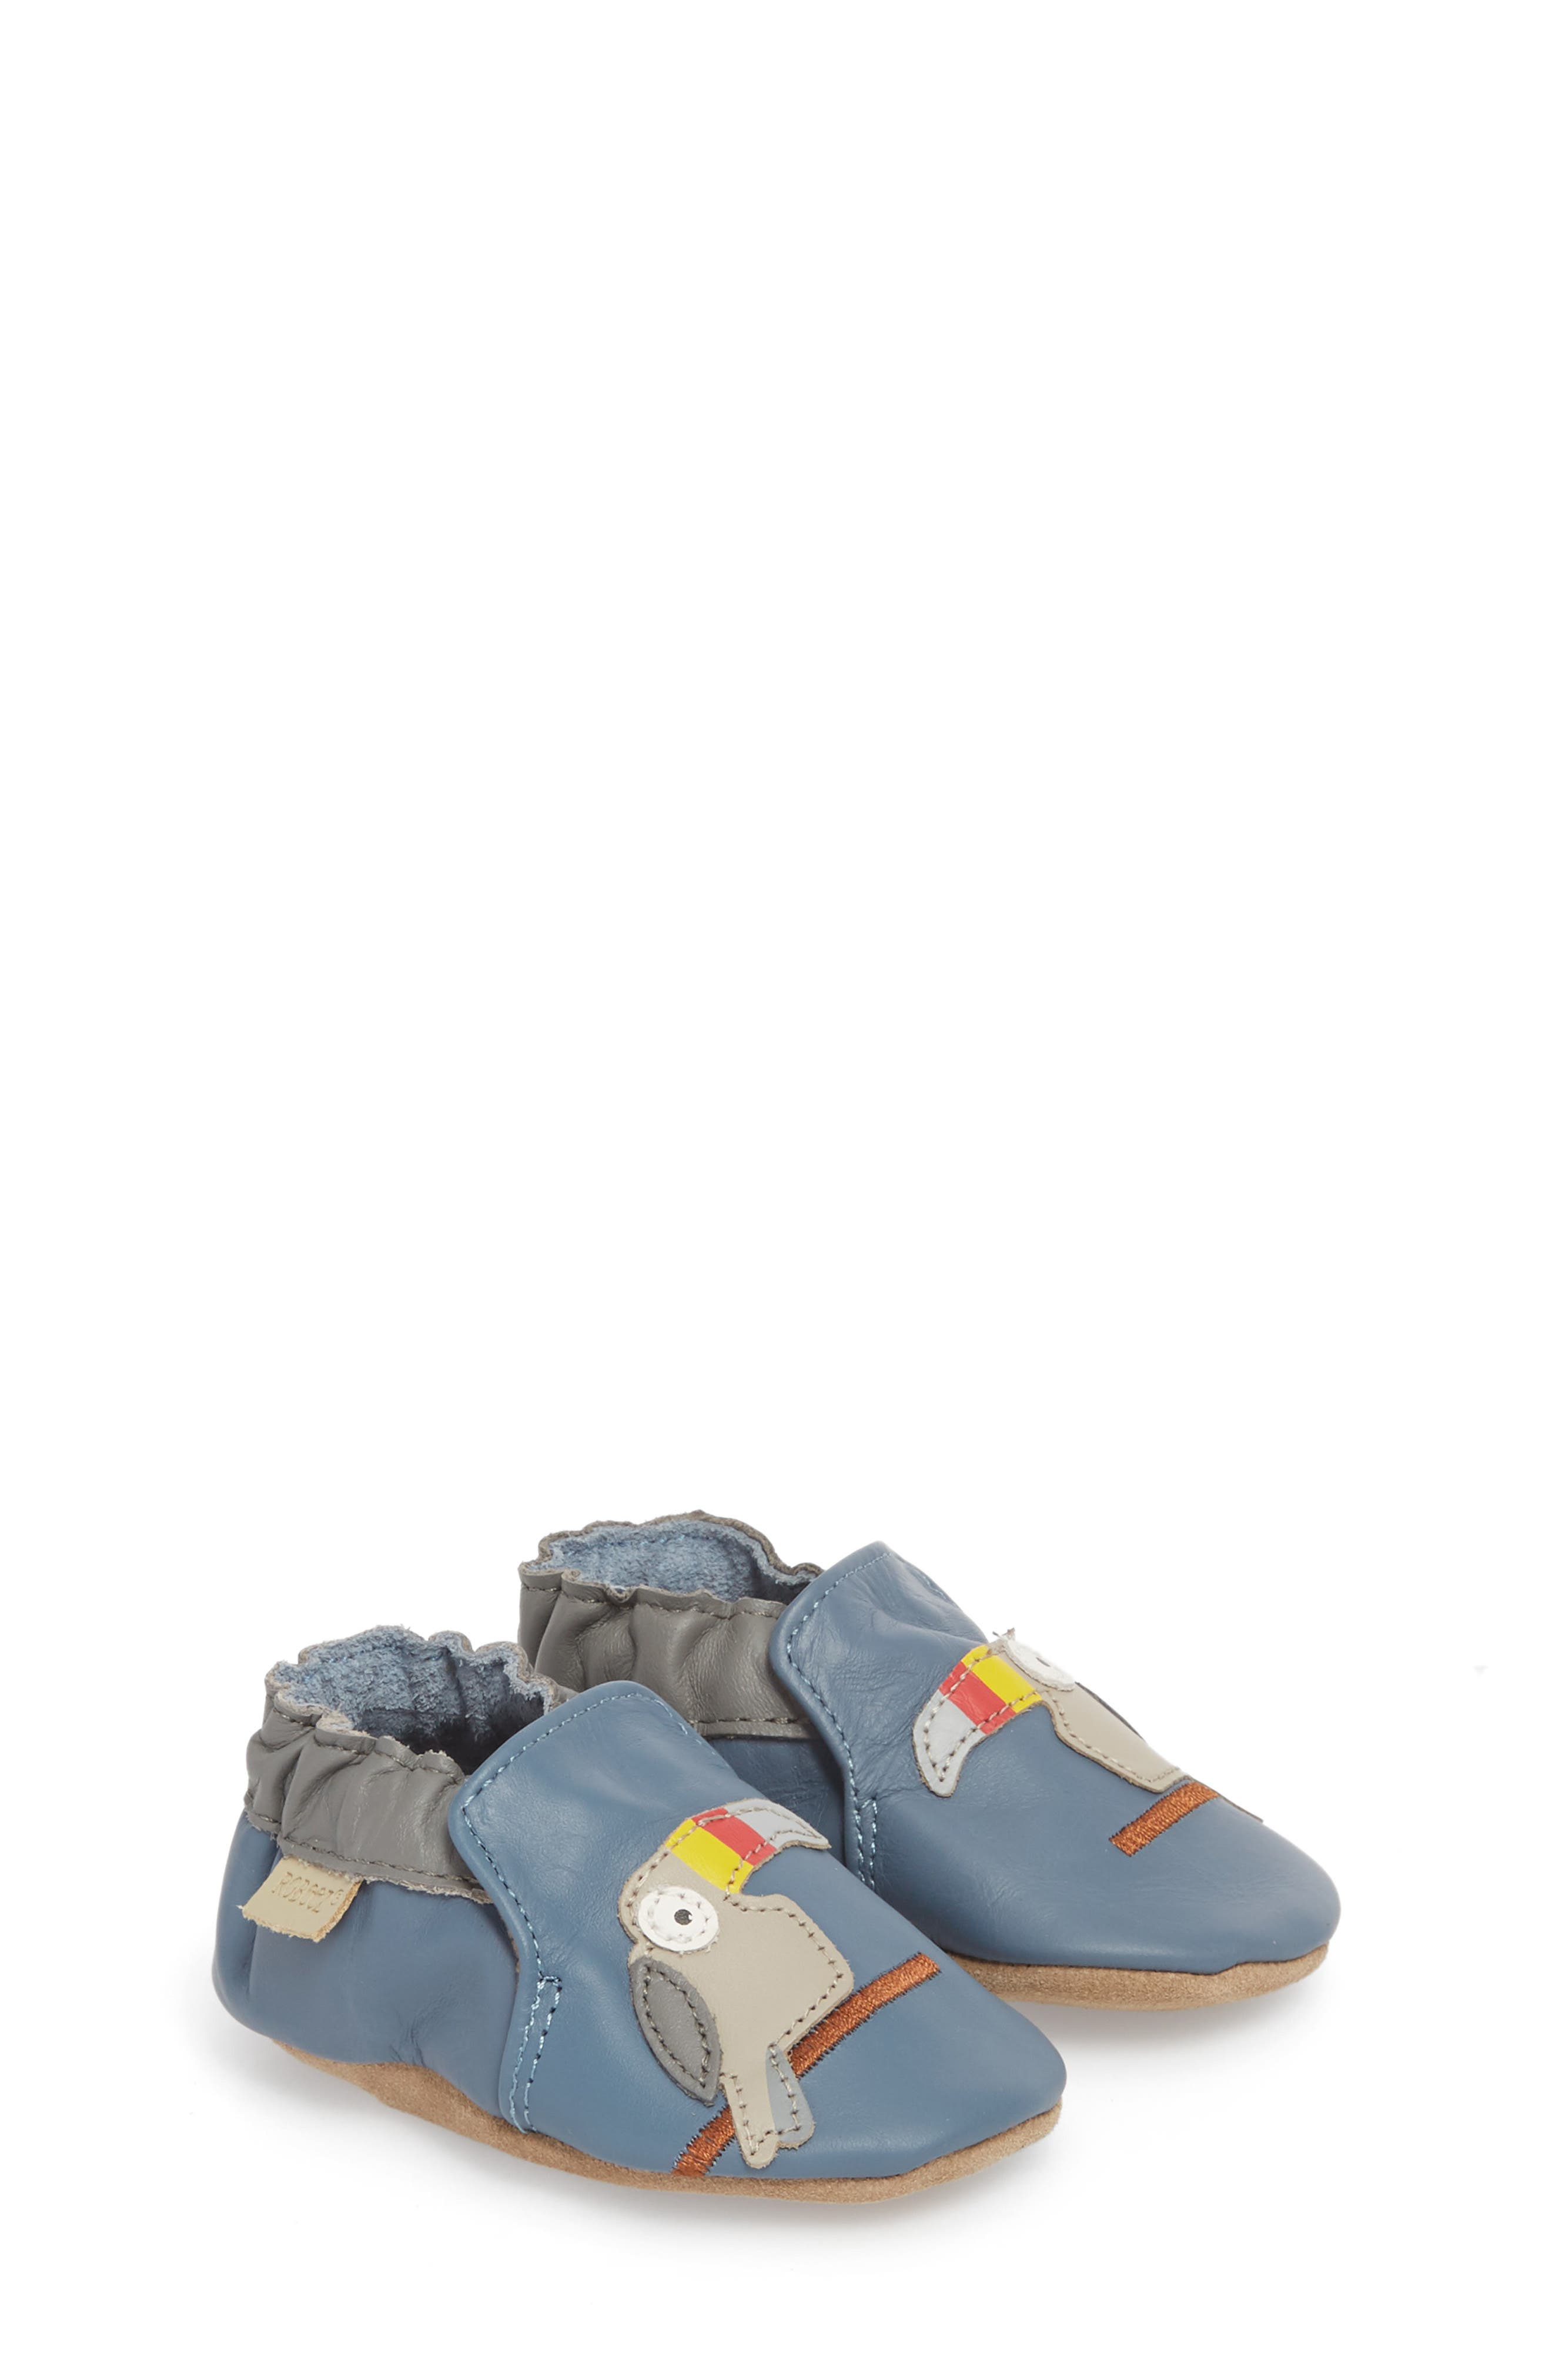 Toucan Tom Moccasin Crib Shoe,                         Main,                         color, CHINA BLUE